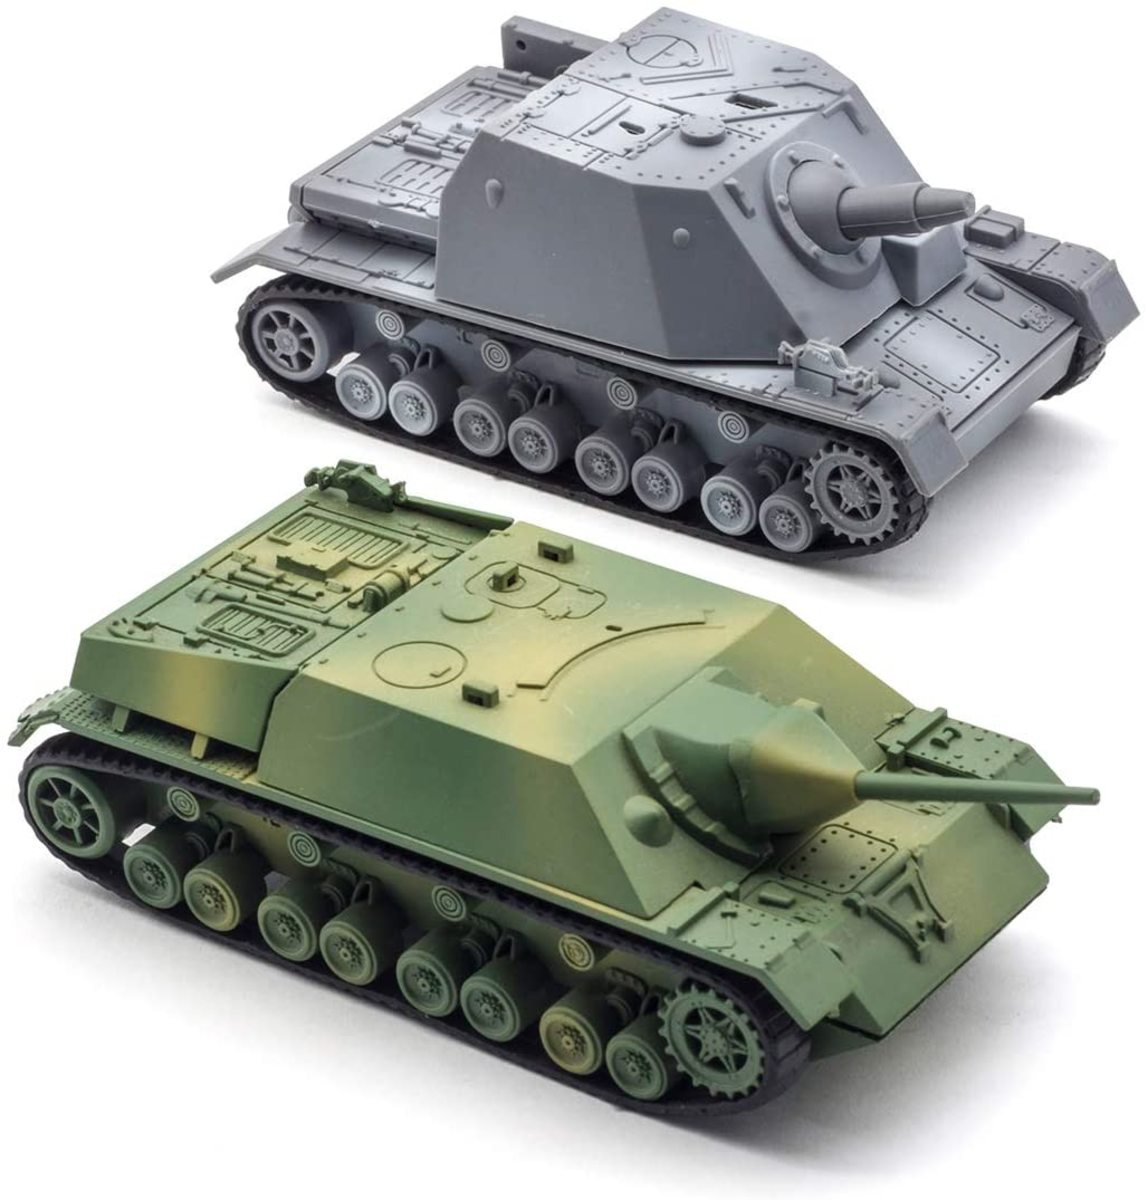 A two-pack is also available:Sturmpanzer and Jagdpanzer IV